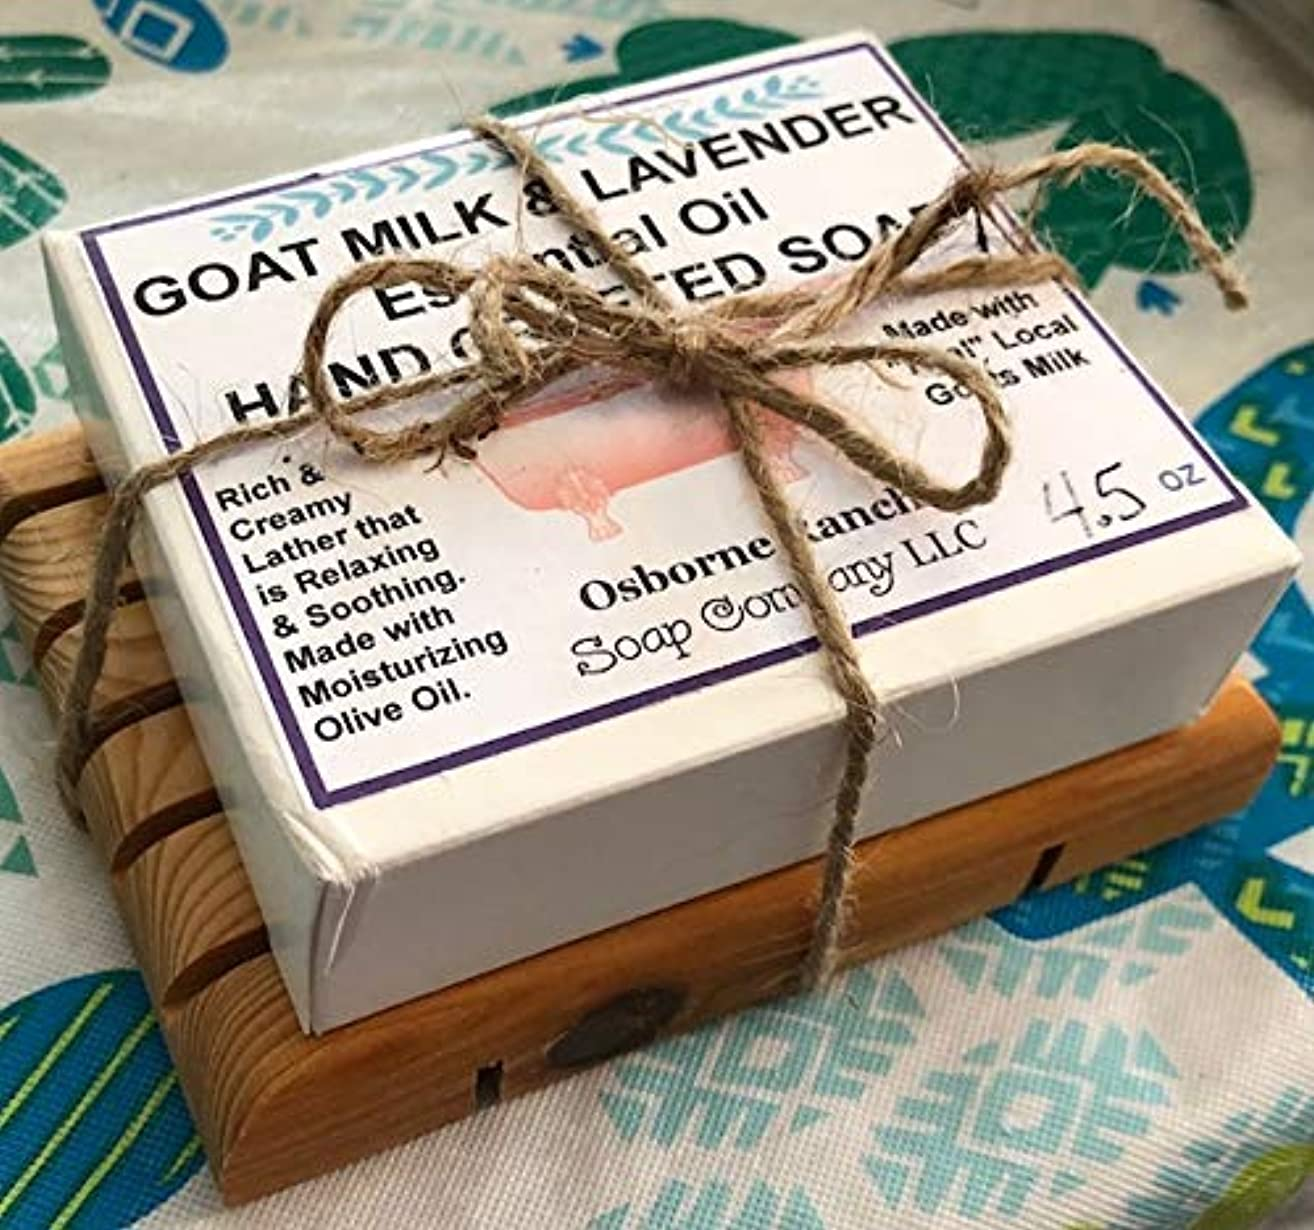 GOAT MILK LAVENDER ESSENTIAL OIL HAND CRAFTED SOAP GIFT SET